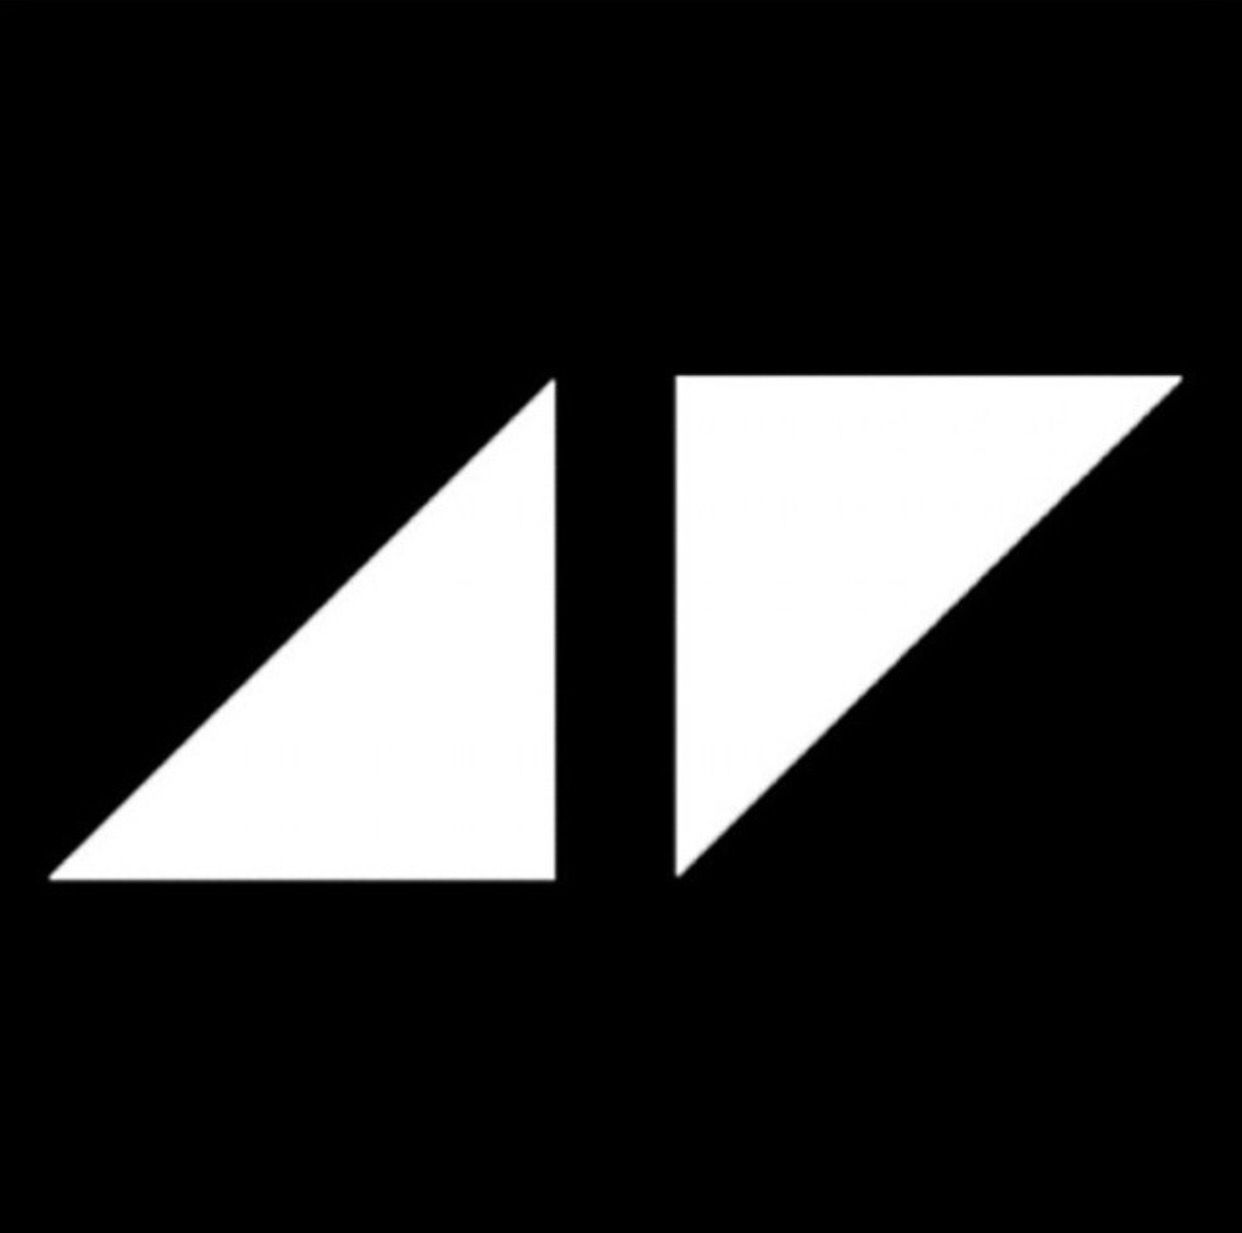 Iphone 5 Wallpaper Pink Avicii Logo Wallpaper Www Imgkid Com The Image Kid Has It